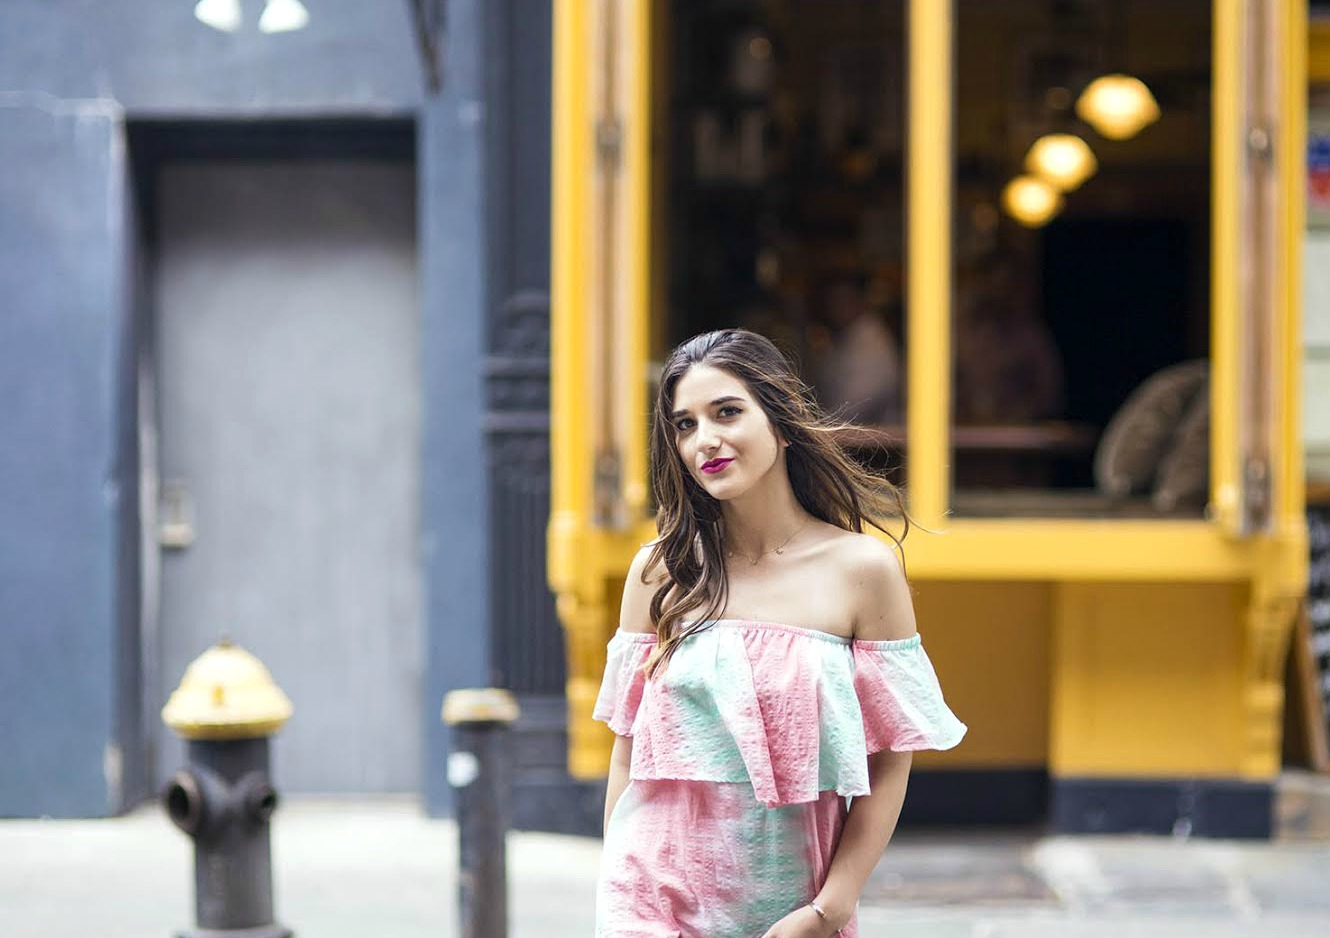 Pastel Tie-Dye Dress Shop Trescool Louboutins & Love Fashion Blog Esther Santer NYC Street Style Blogger Outfit OOTD Trendy Cold Shoulders Blue Black Women Girl Hair Curly Brown Green Pink Red Lip Makeup Lace Up Heels Gray Lady Fashion Bracelet Choker.jpg